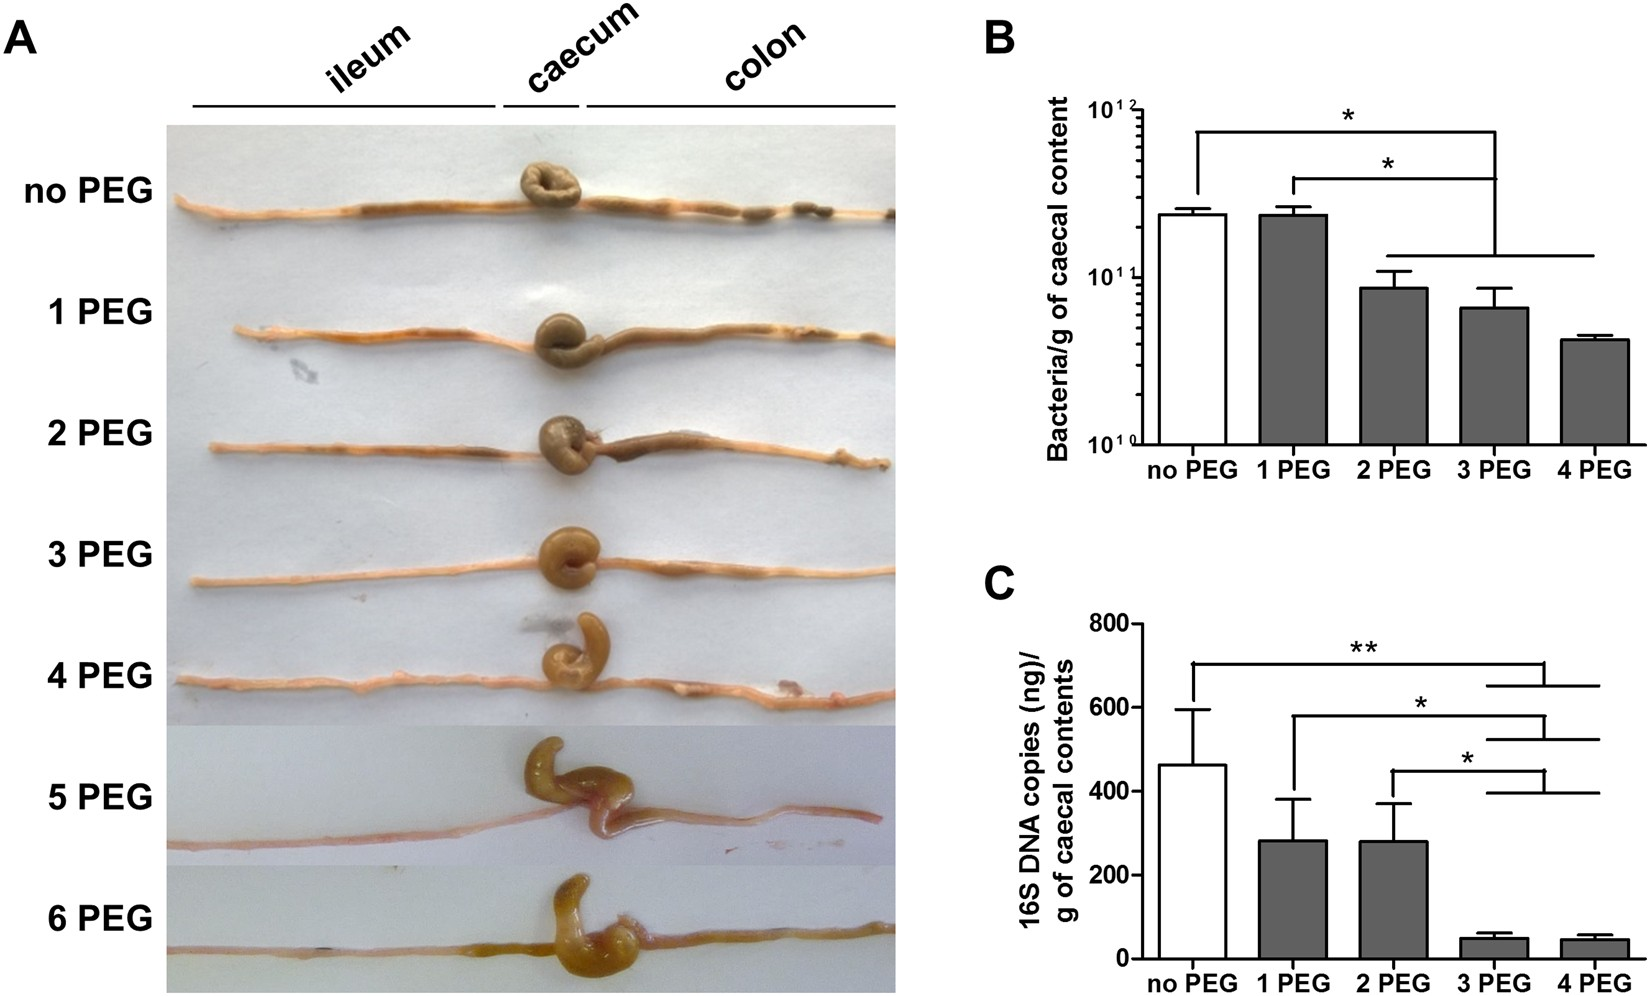 Transplantation of human microbiota into conventional mice durably